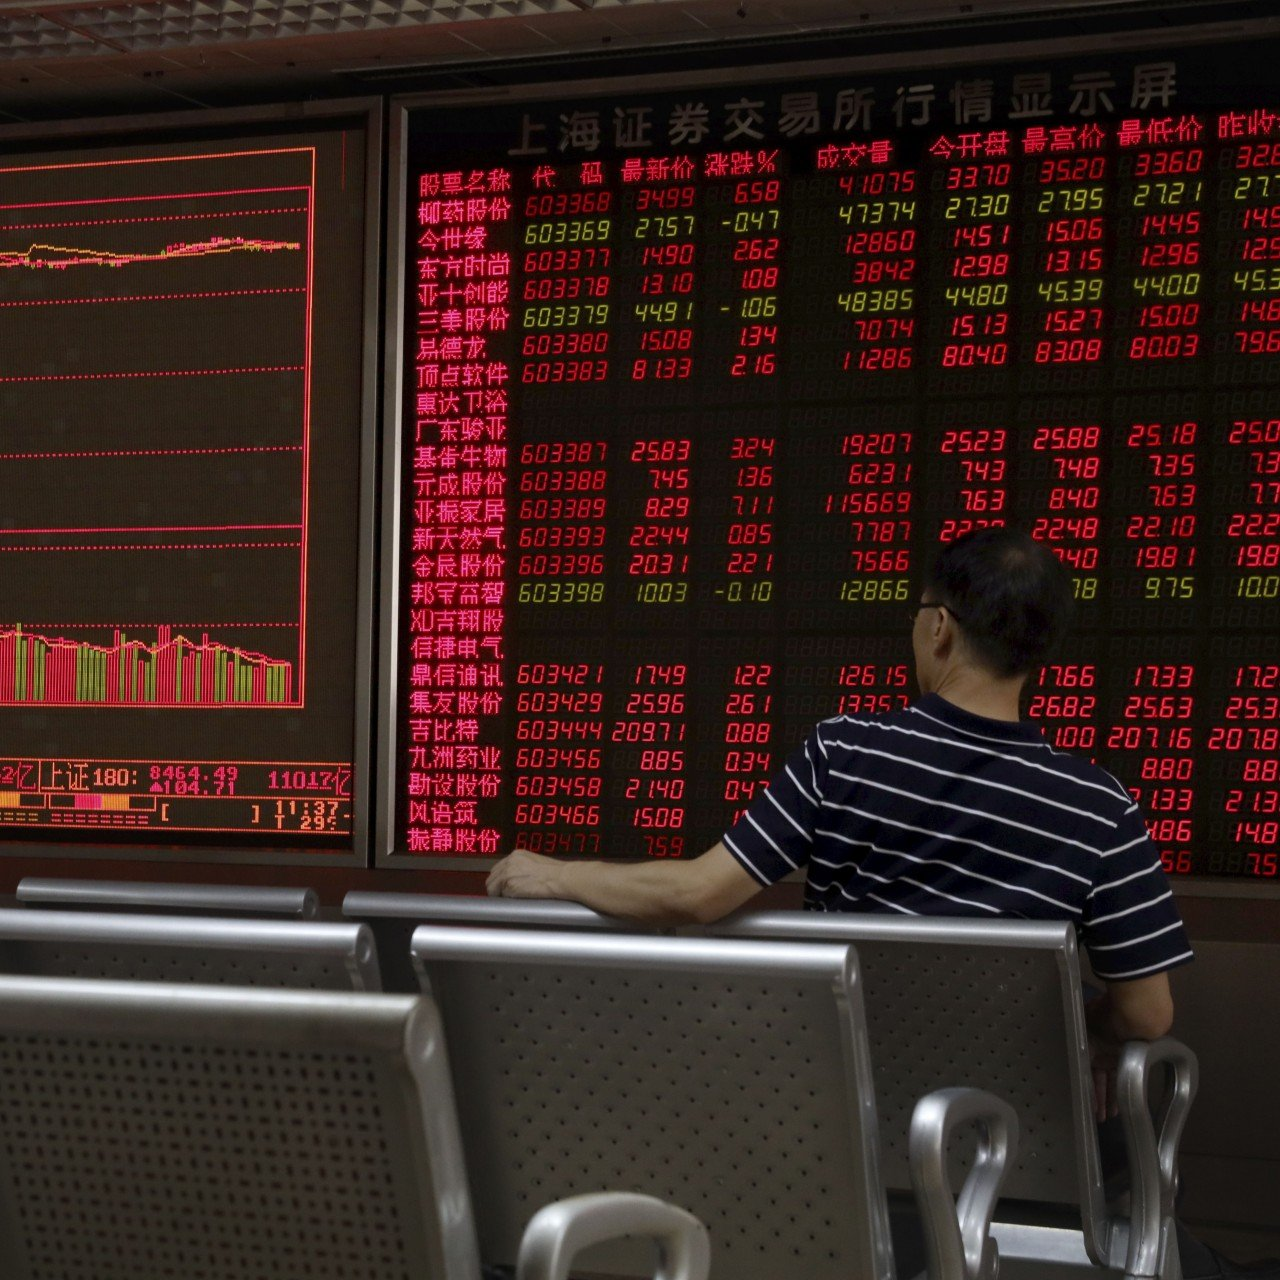 China shares climb on improved trade sentiment, while Hong